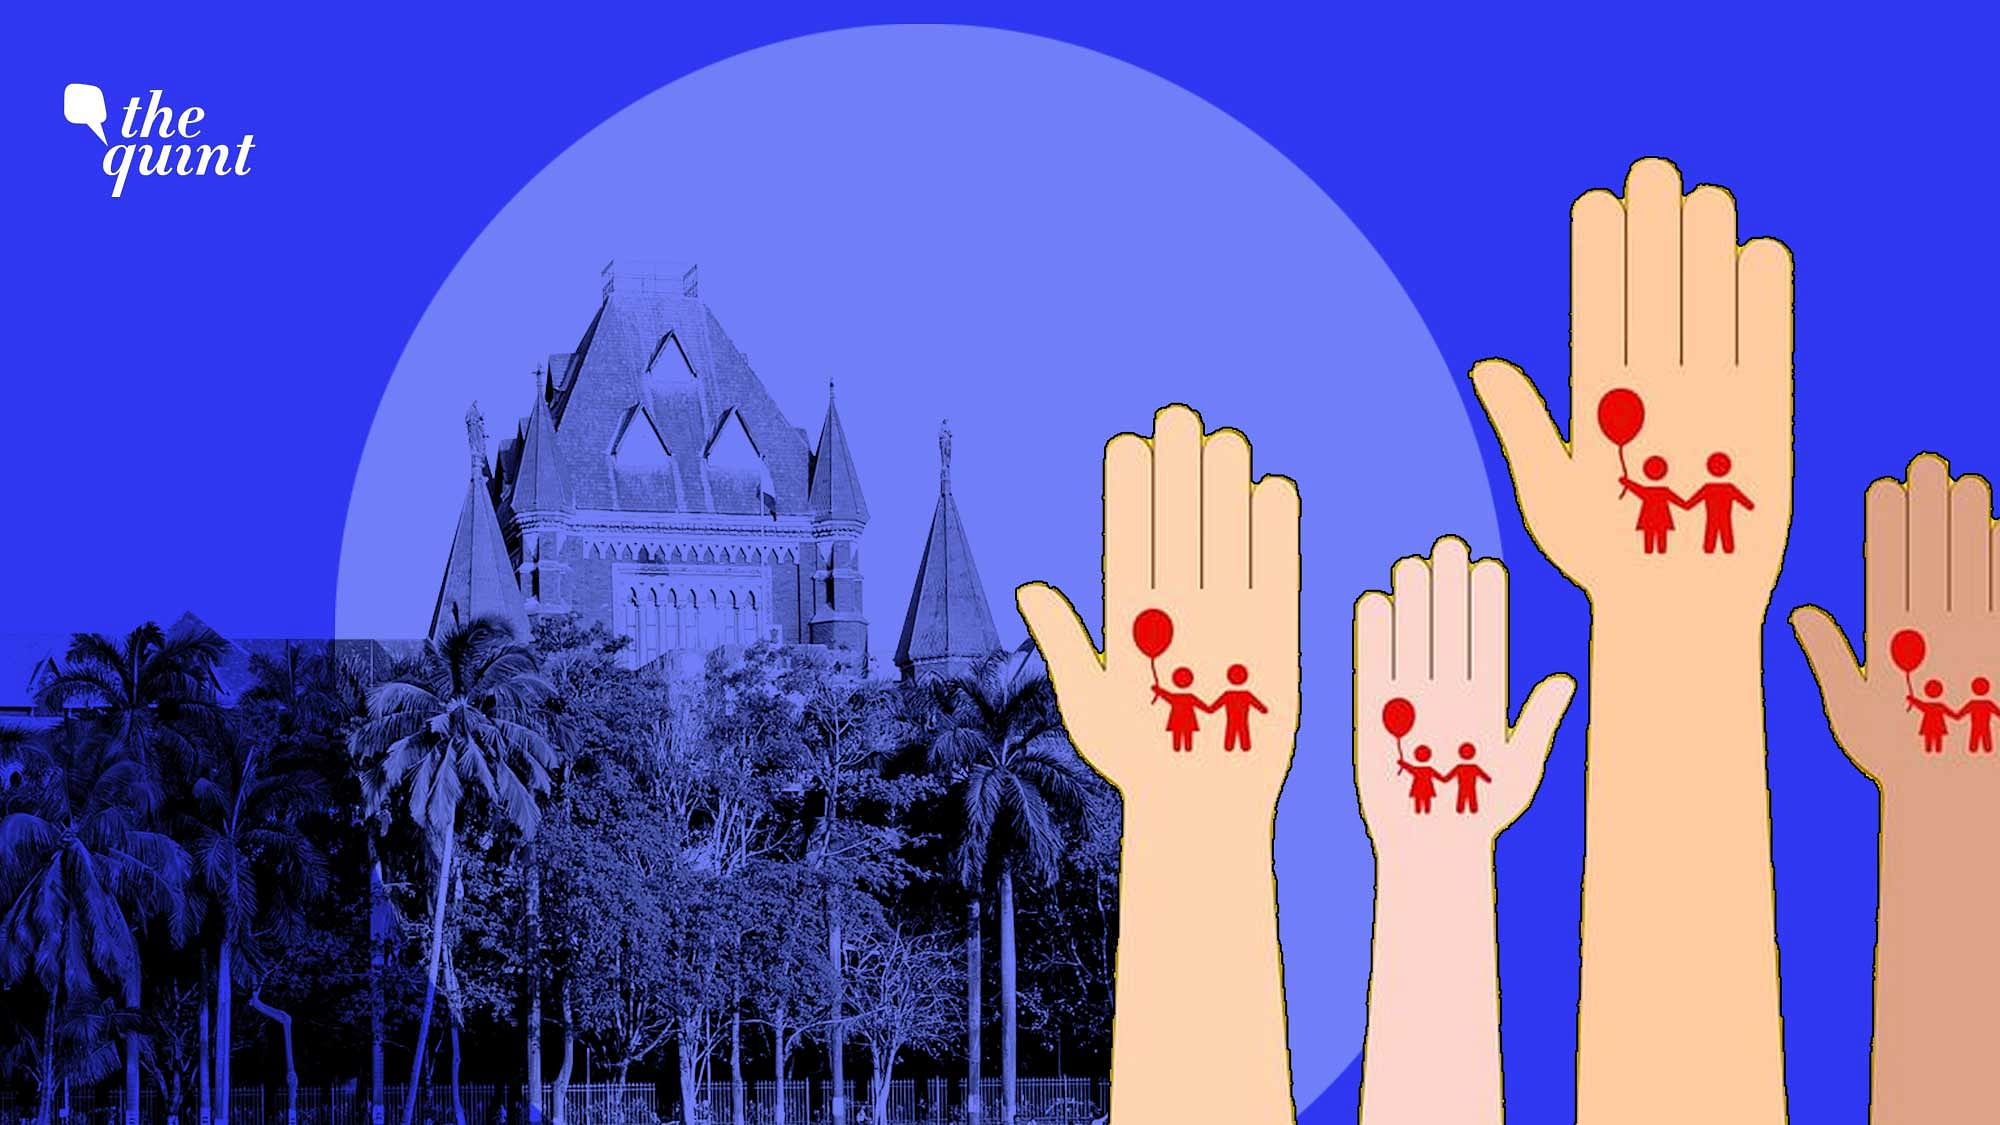 Bombay High Court had said that holding a minor's hand, unzipping pants is not sexual assault under the POCSOact.